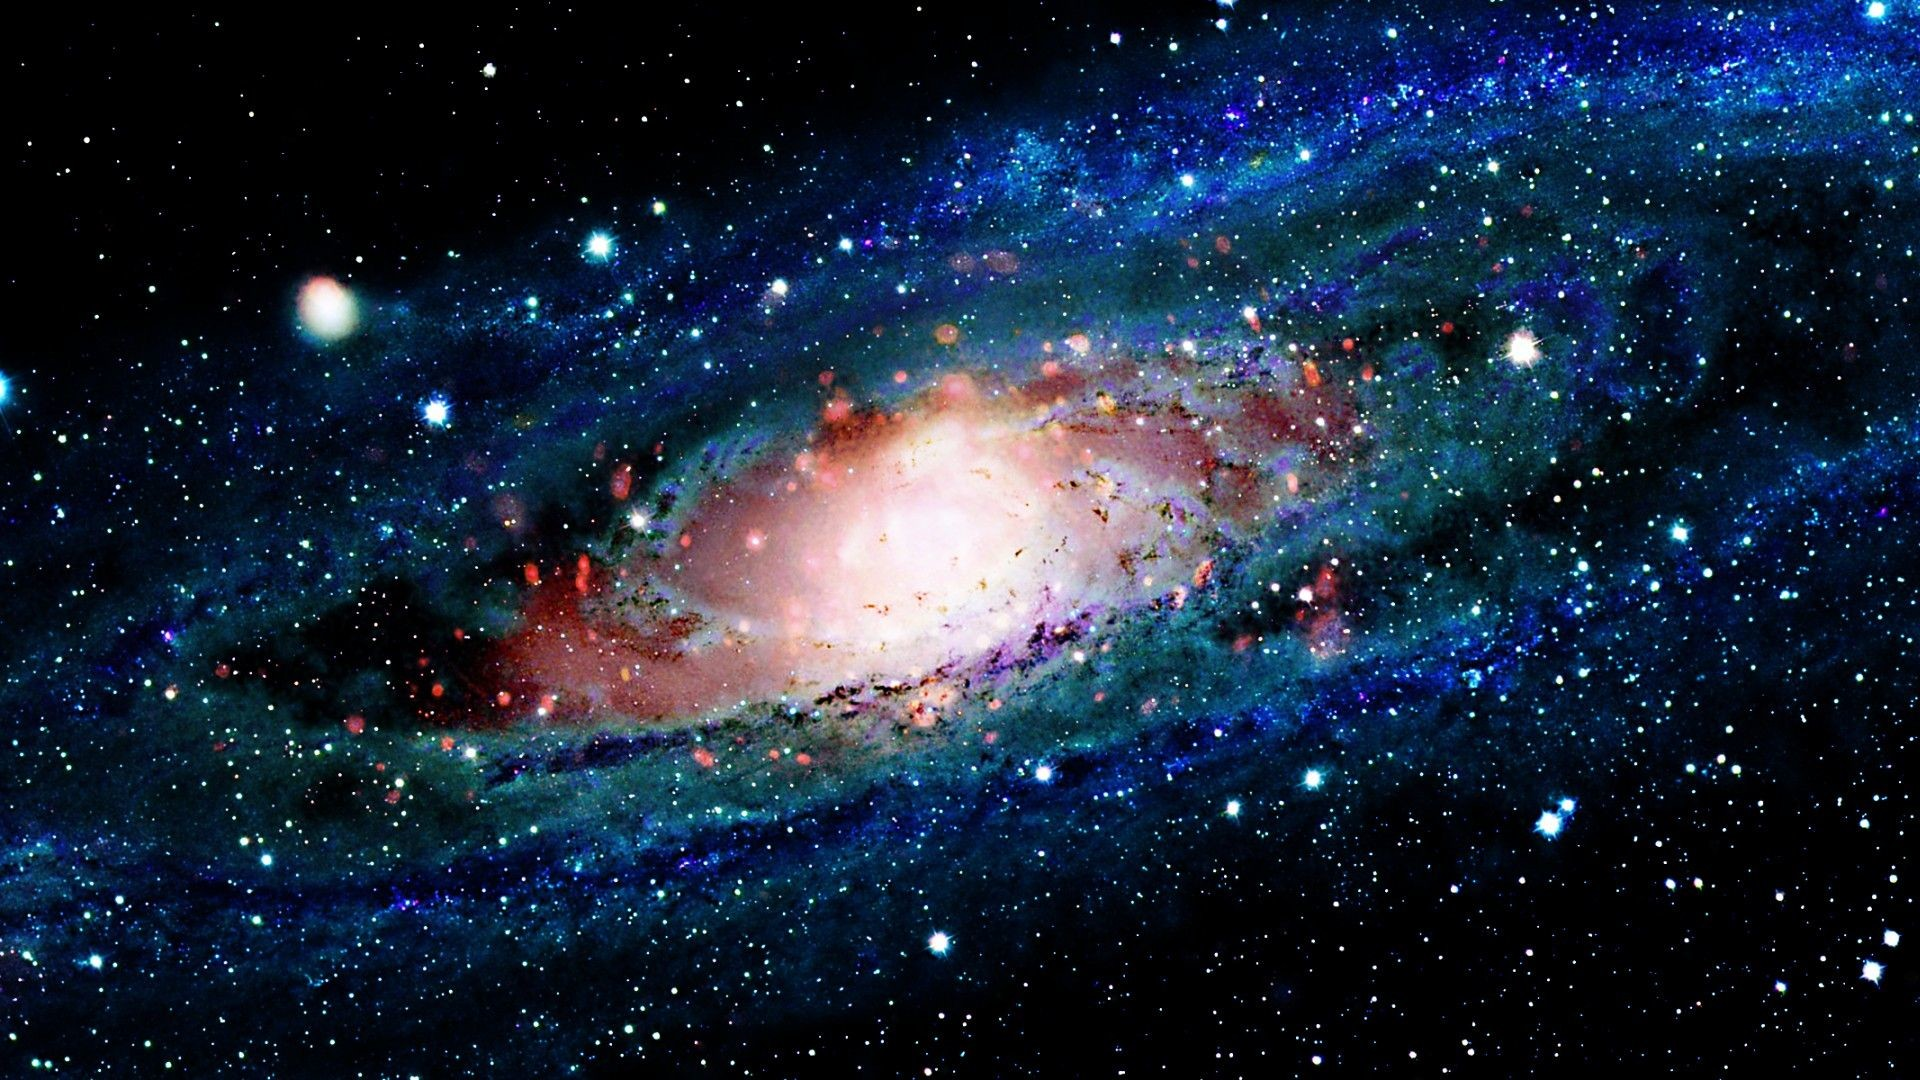 Cool Hd Space Galaxy Wallpapers 80 Images